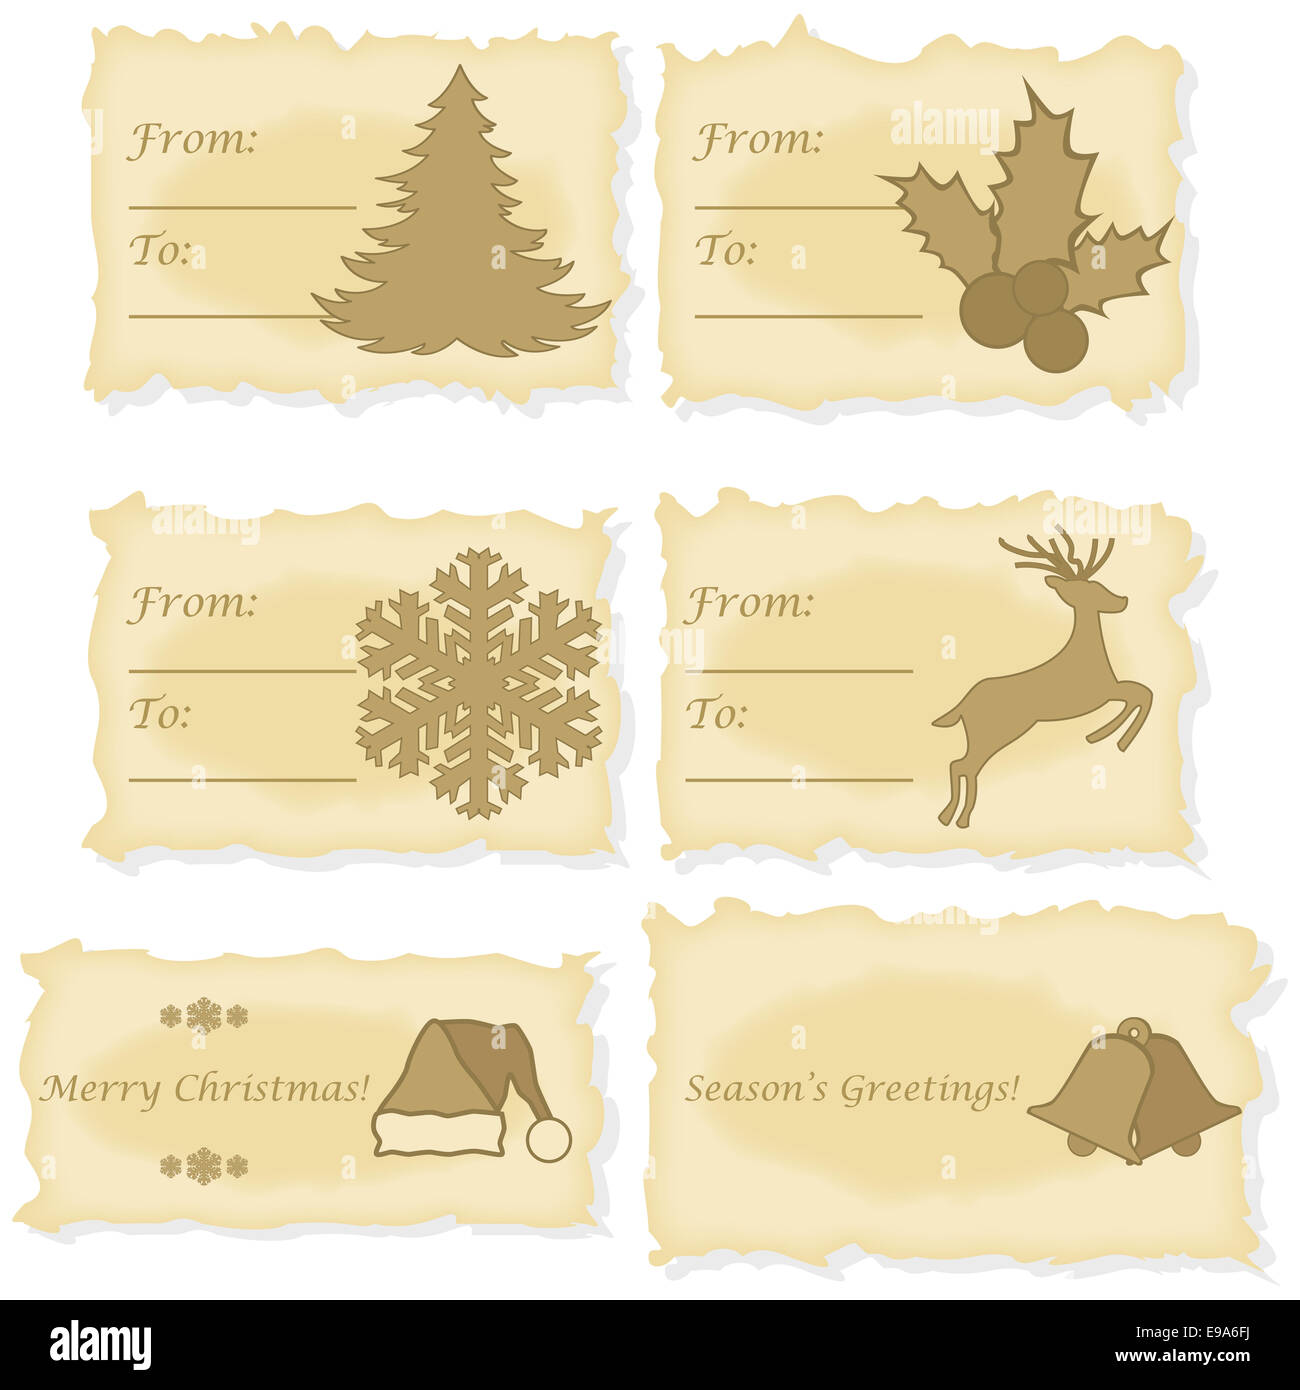 Christmas cards printed on old paper Stock Photo: 74598038 - Alamy